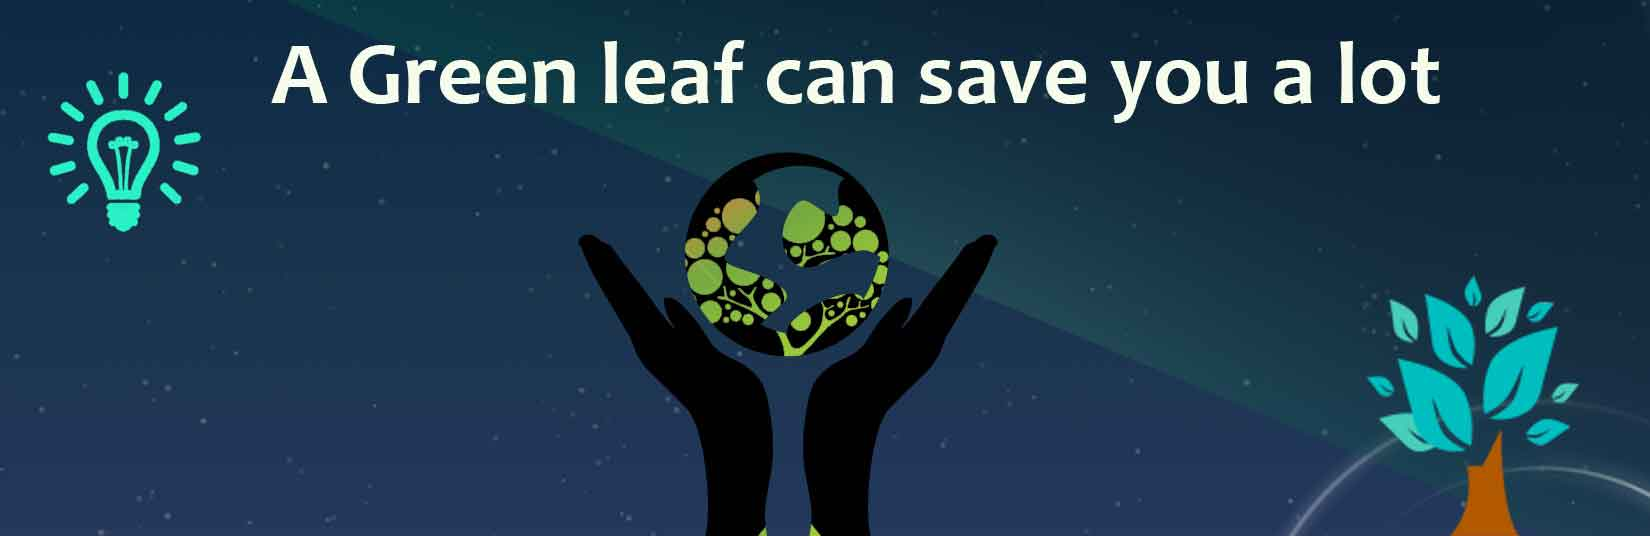 A green leaf can save you a lot